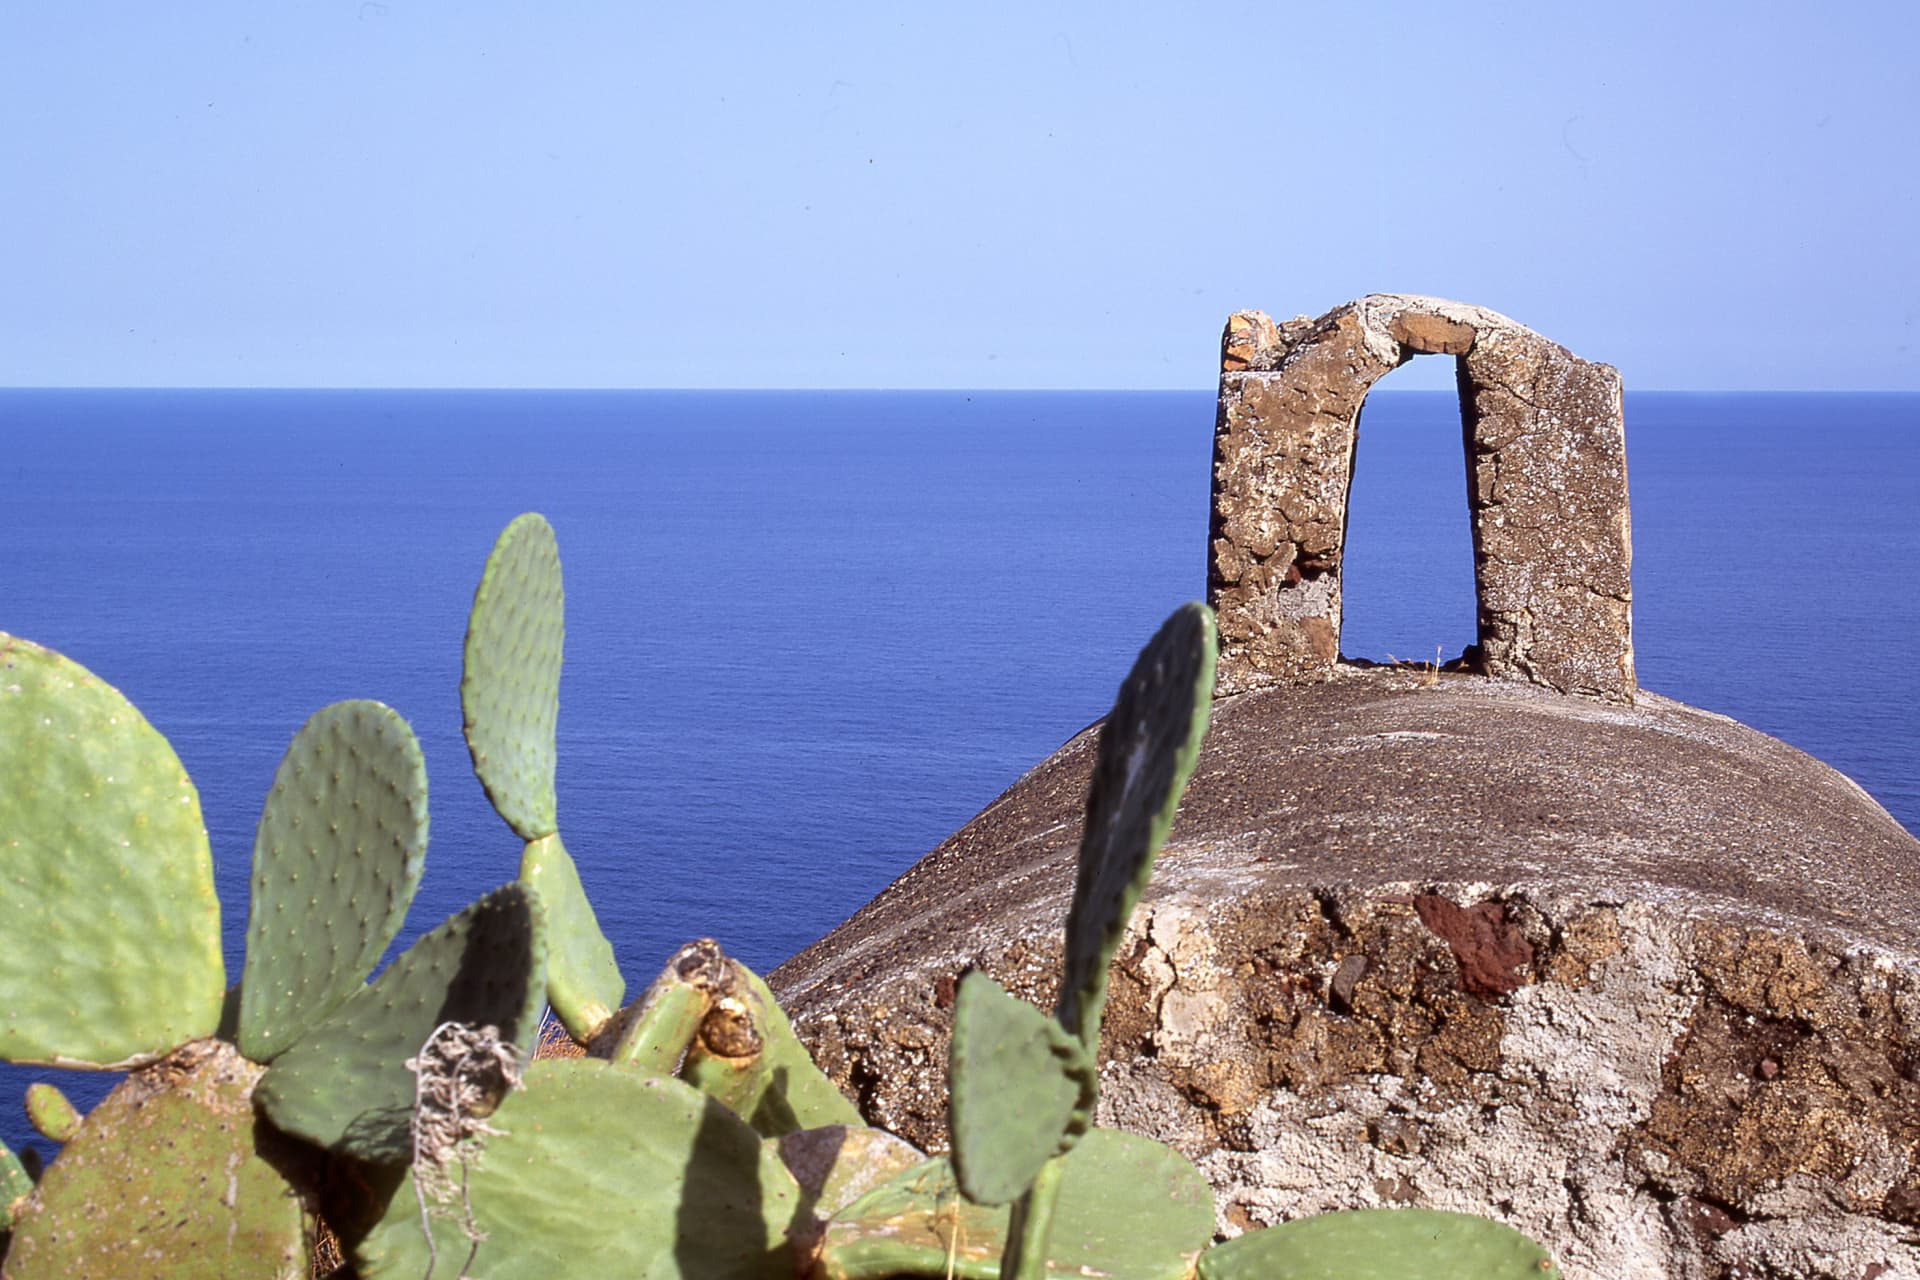 The ruins of the old church of Capo, framed by blue, are memories that remain well etched in your mind.